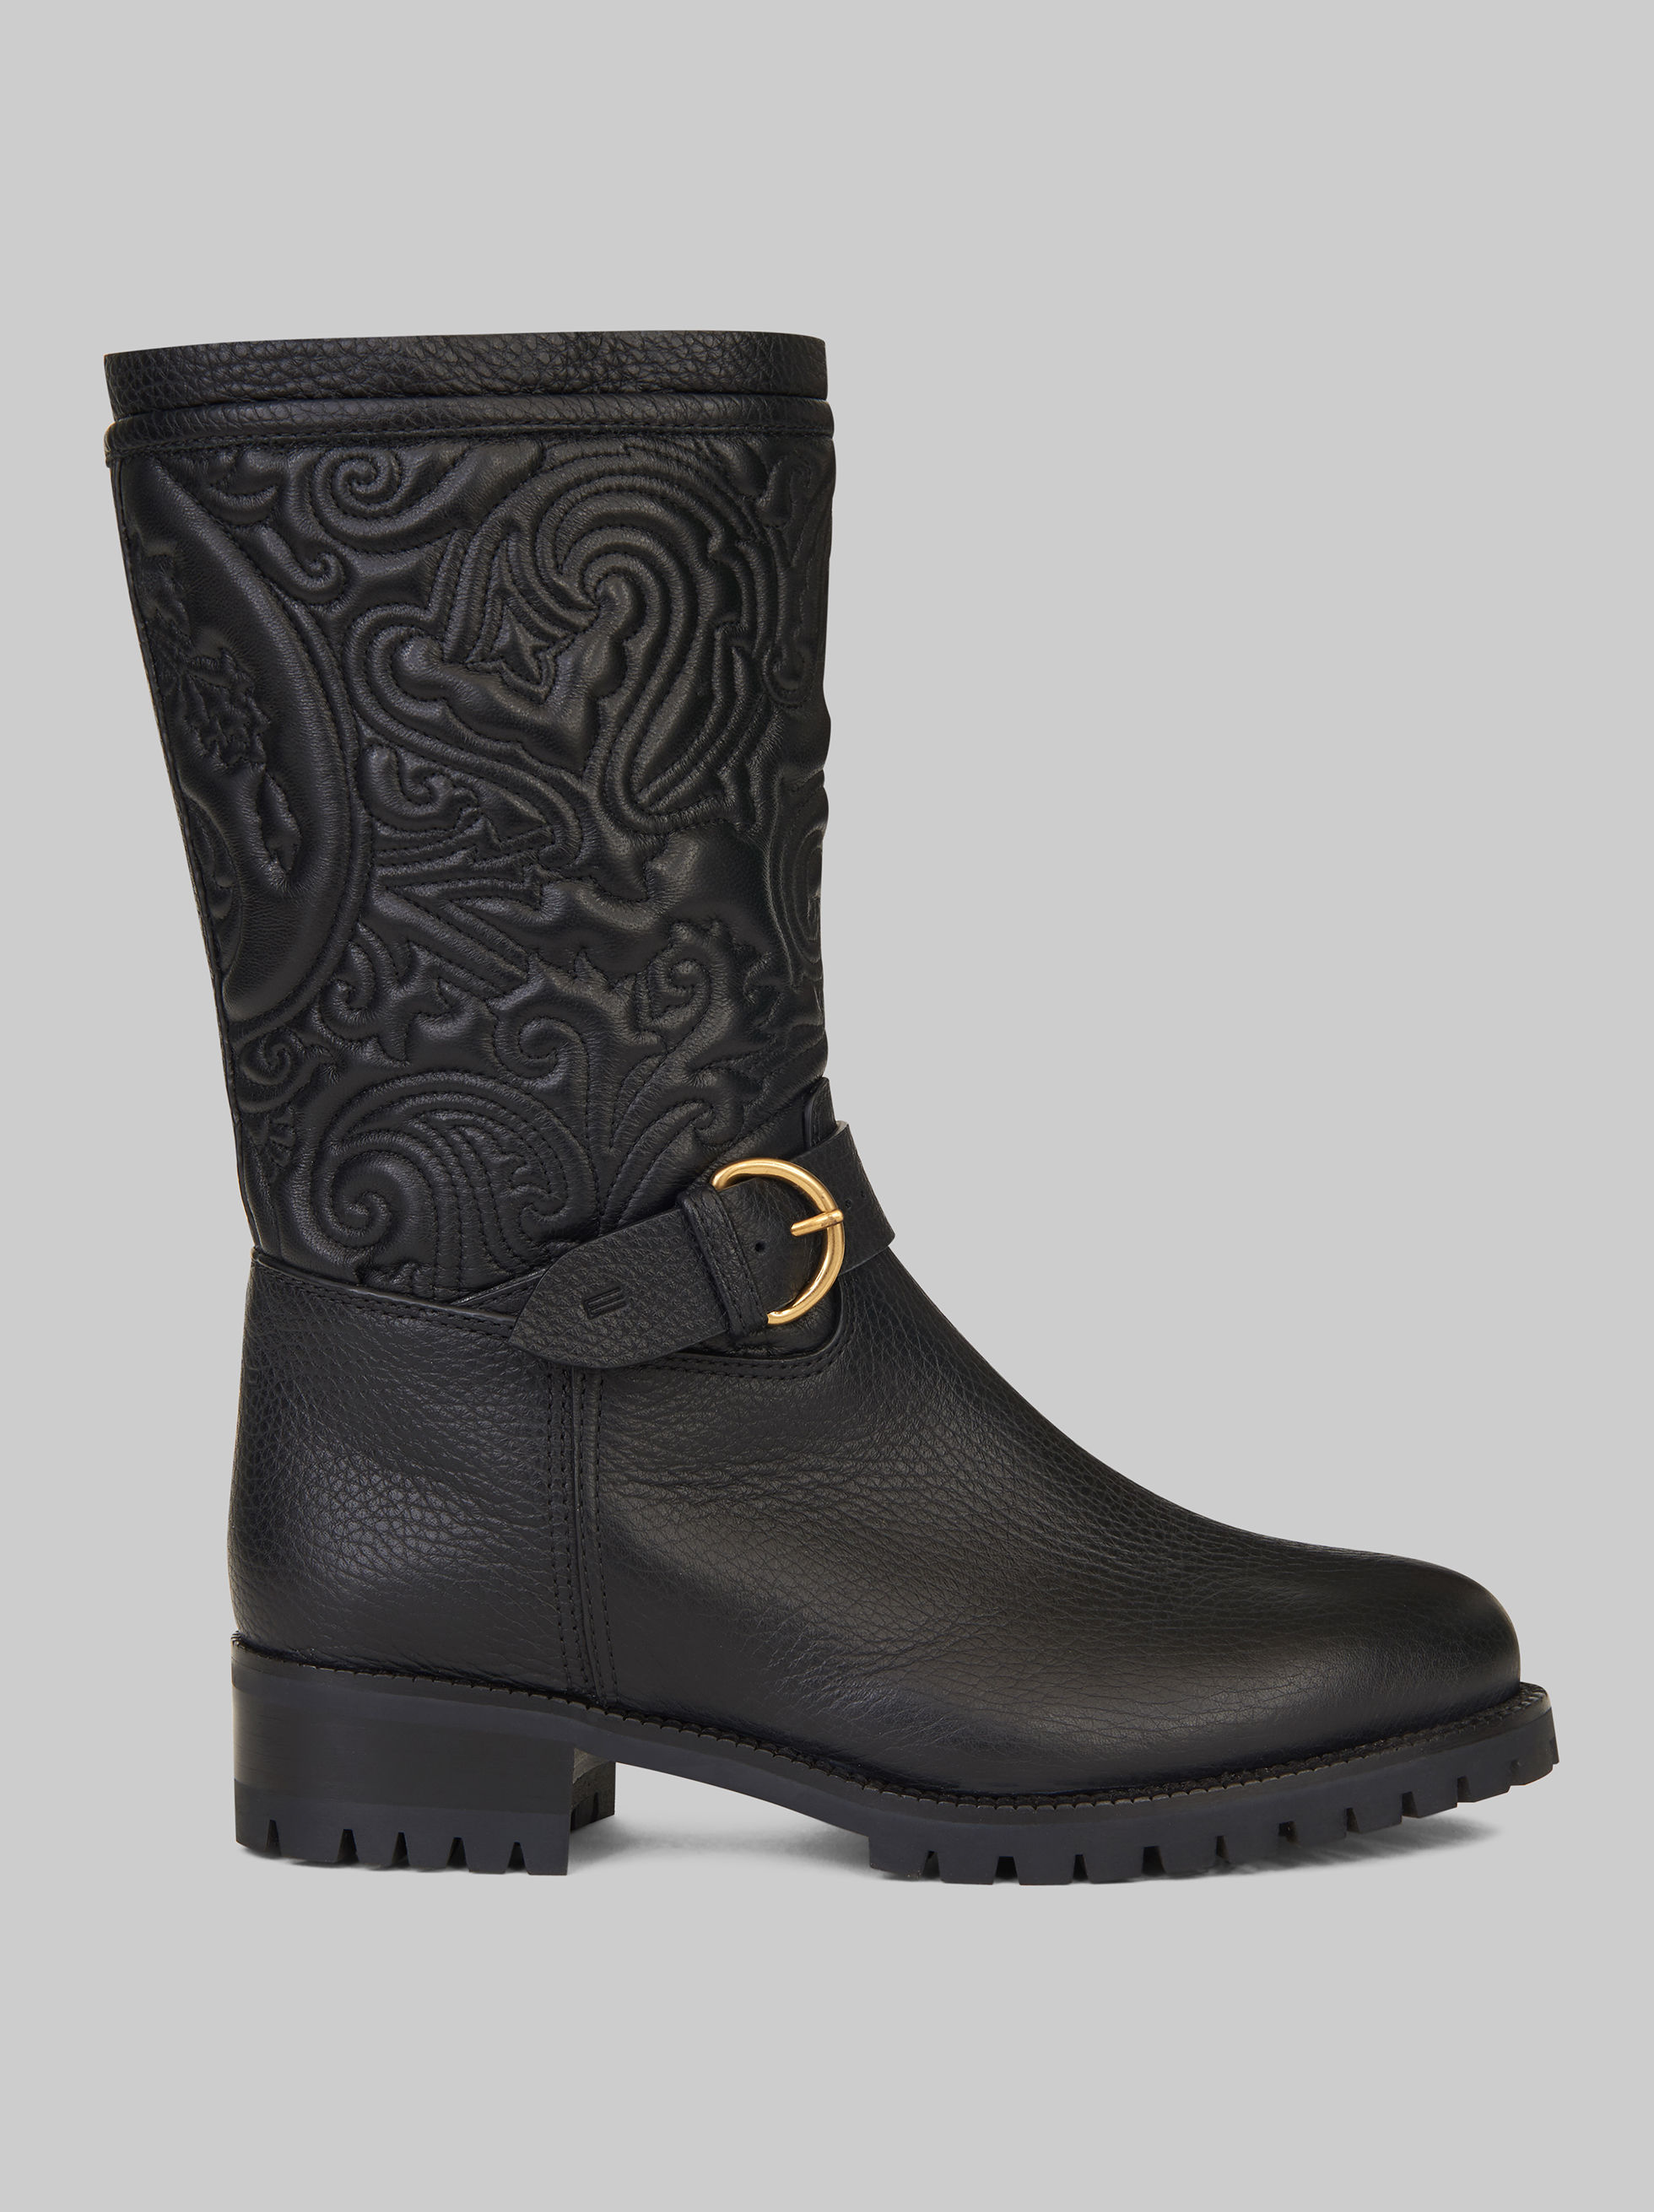 BOTAS CON ESTAMPADO PAISLEY EN RELIEVE